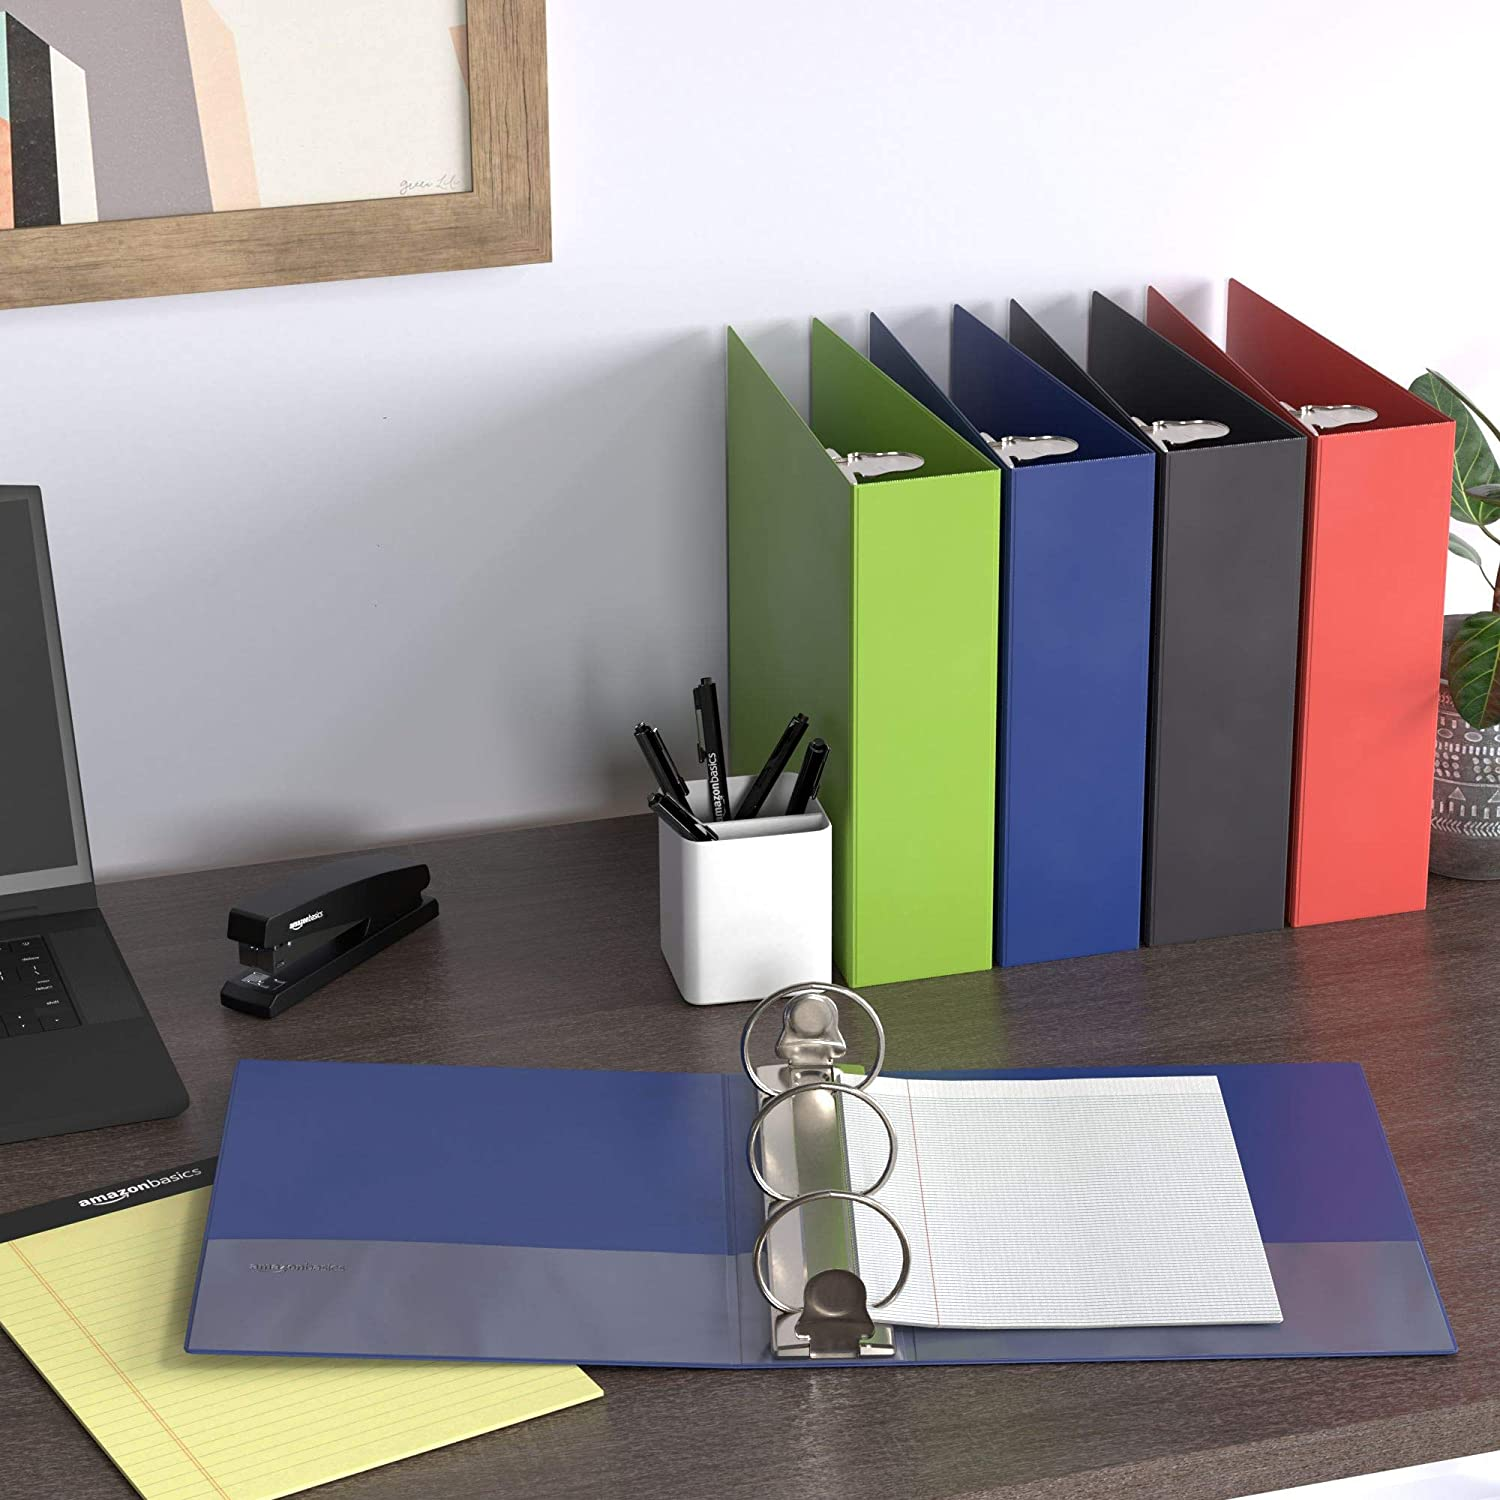 Basics 3 Inch, 3 Ring Binder, Round Ring, Customizable View Binder, Mixed, 4-Pack : Office Products